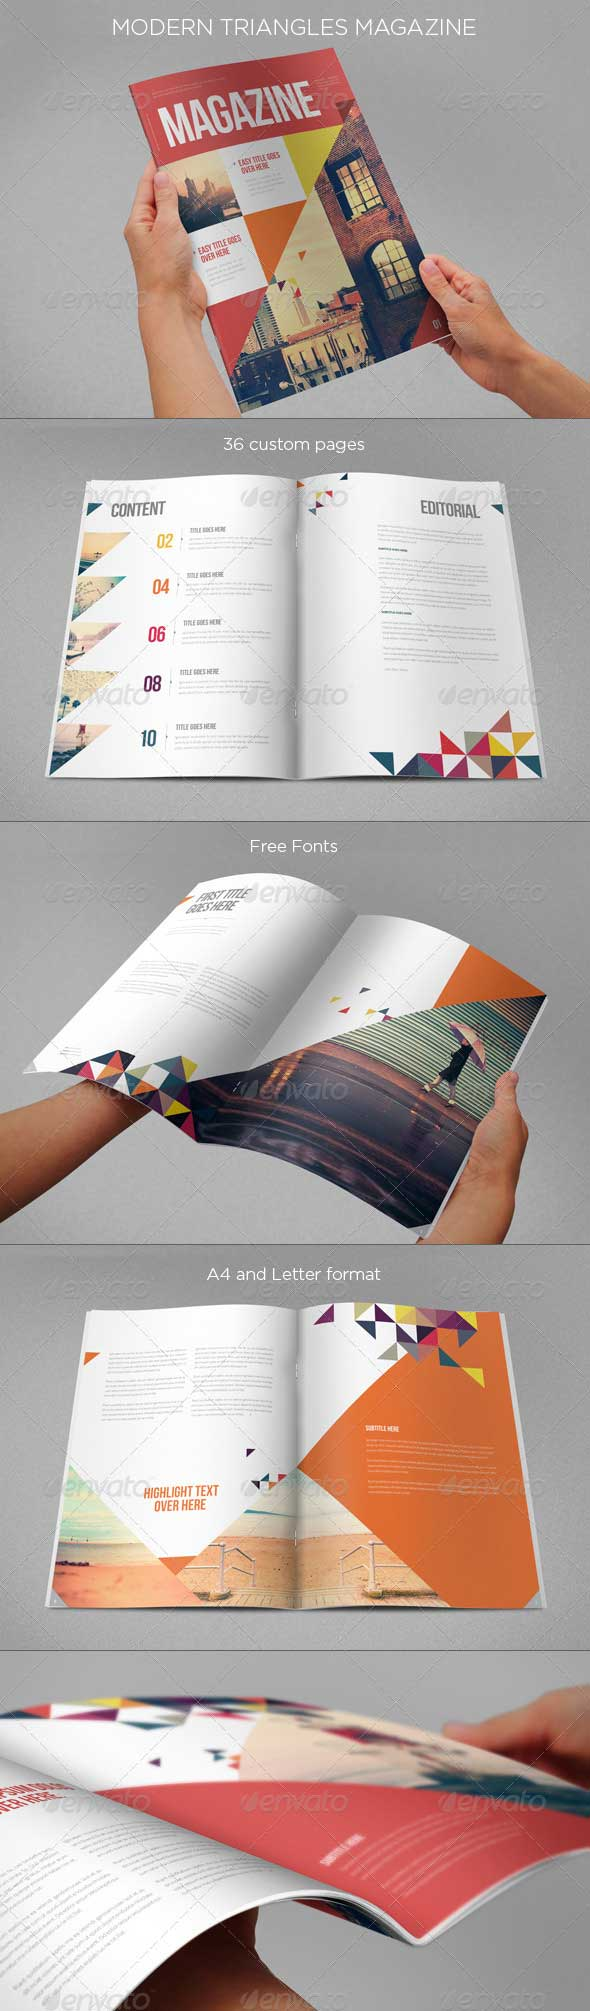 modern-triangles-magazine-template